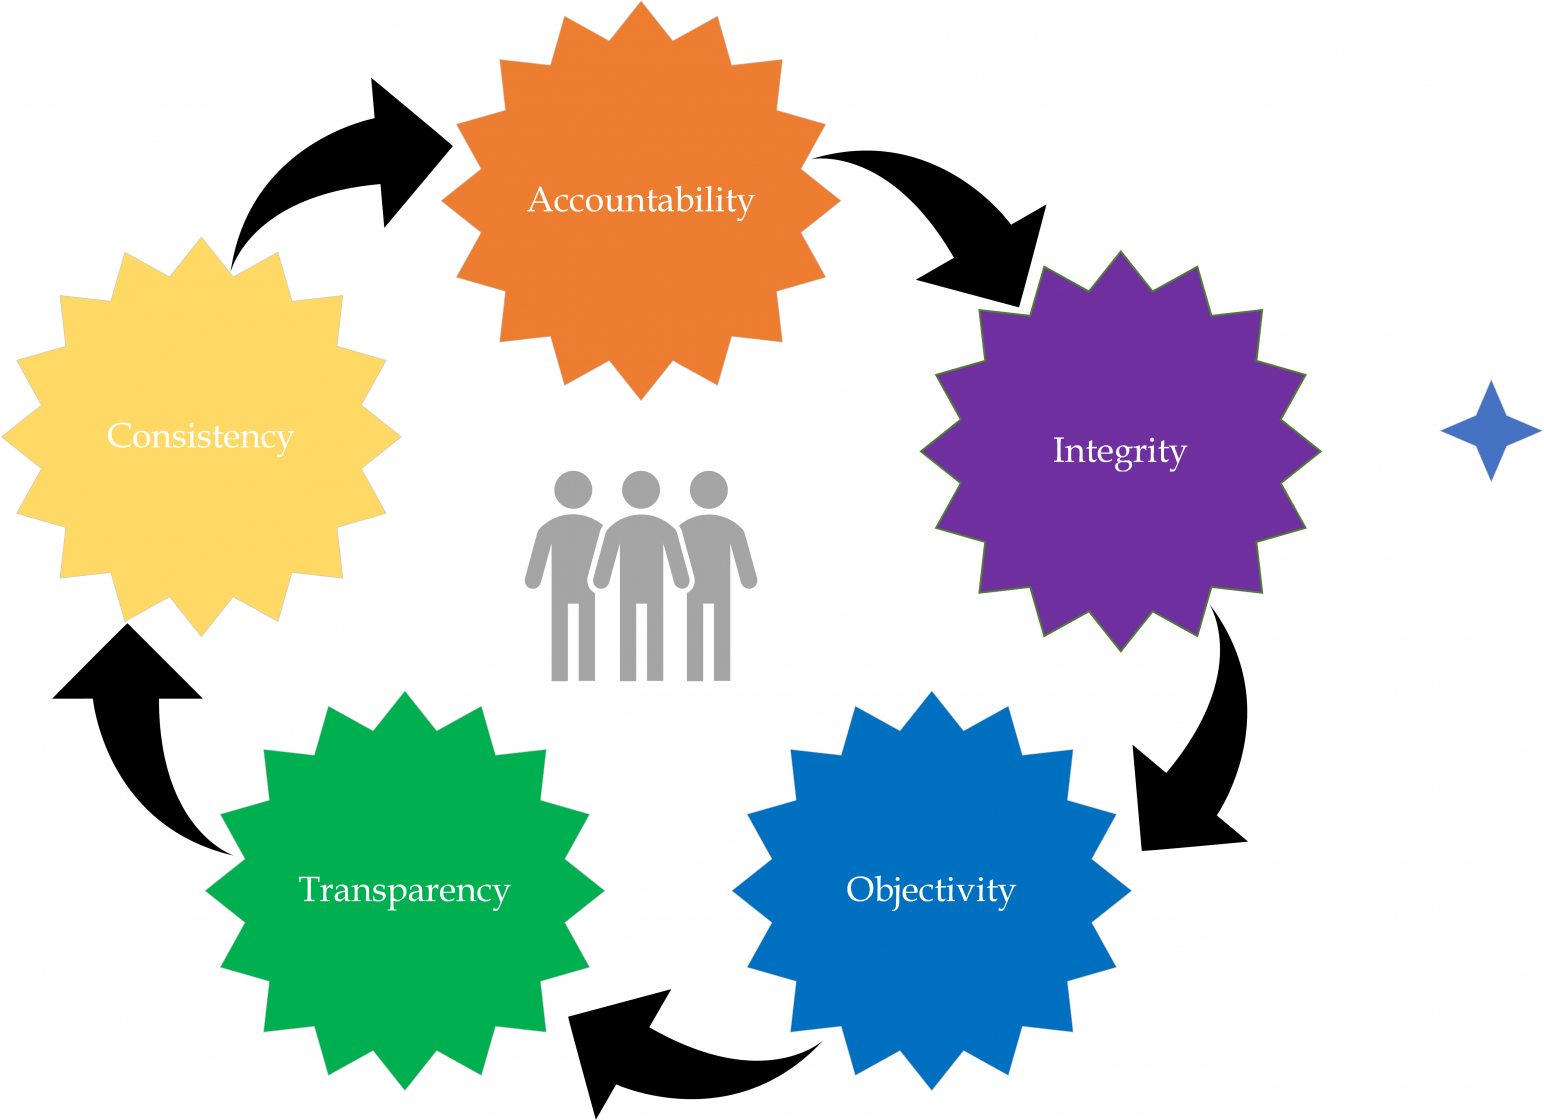 Infographic: Accountability, Integrity, Objectivity, Transparency, Consistency